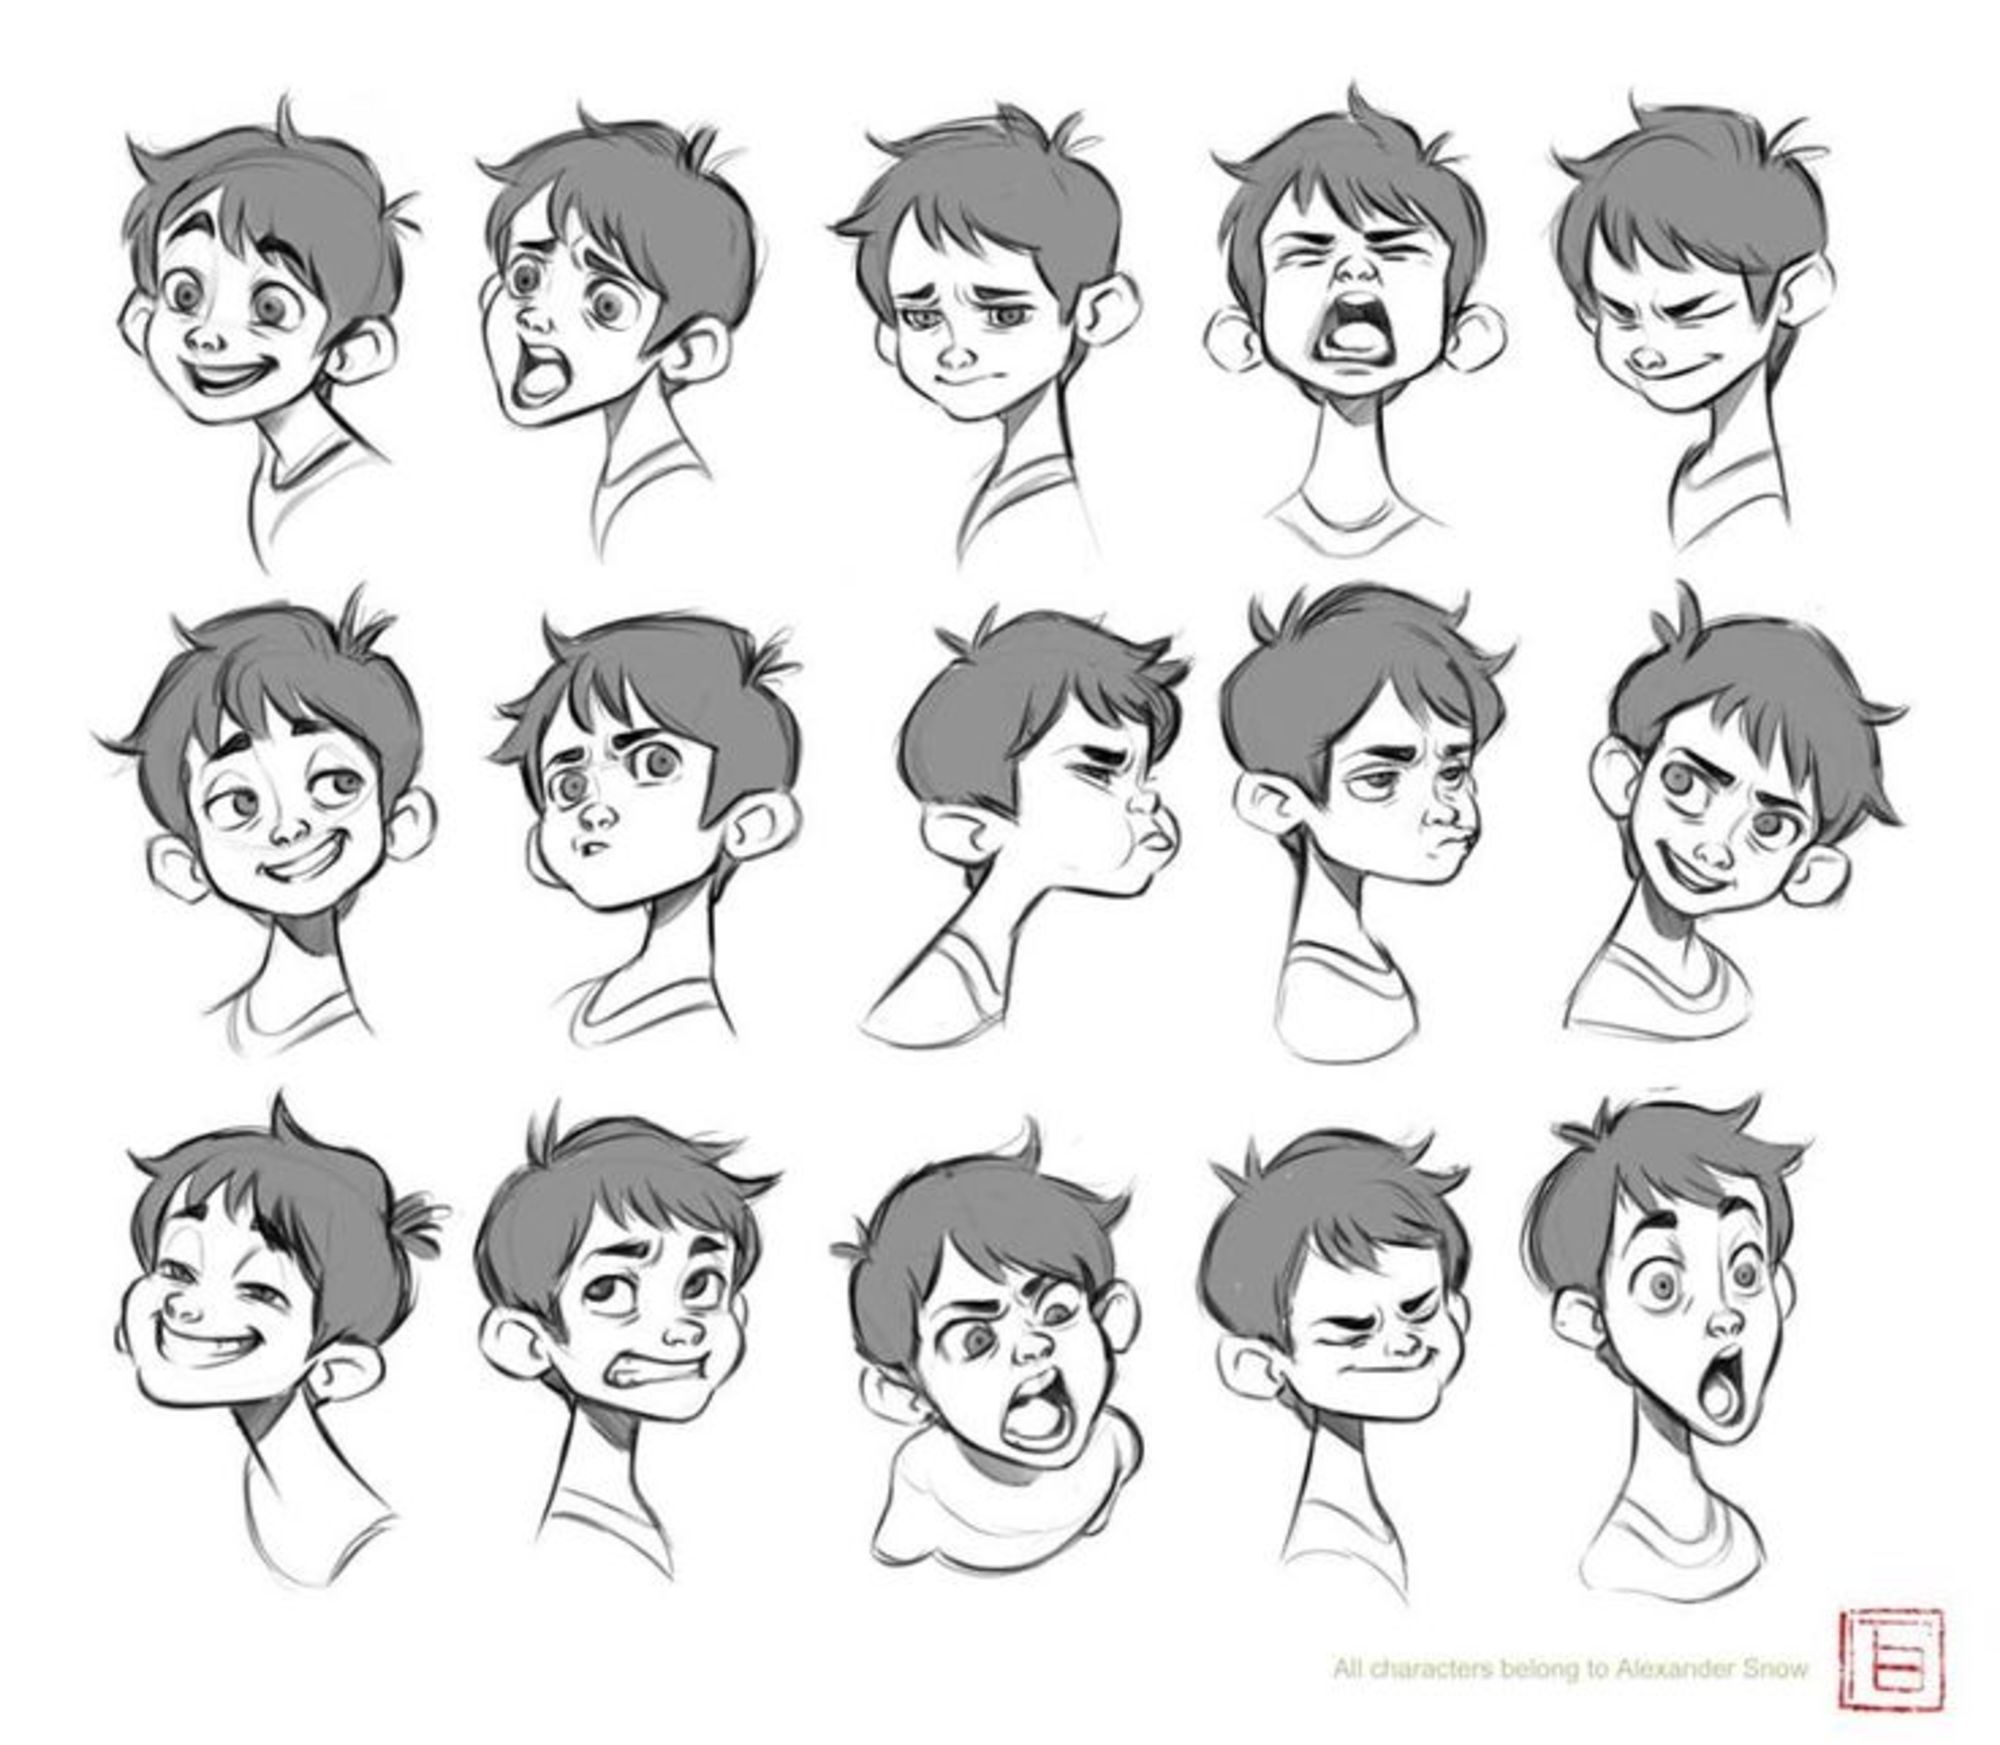 Character Design Up : Image result for disney animation facial expression